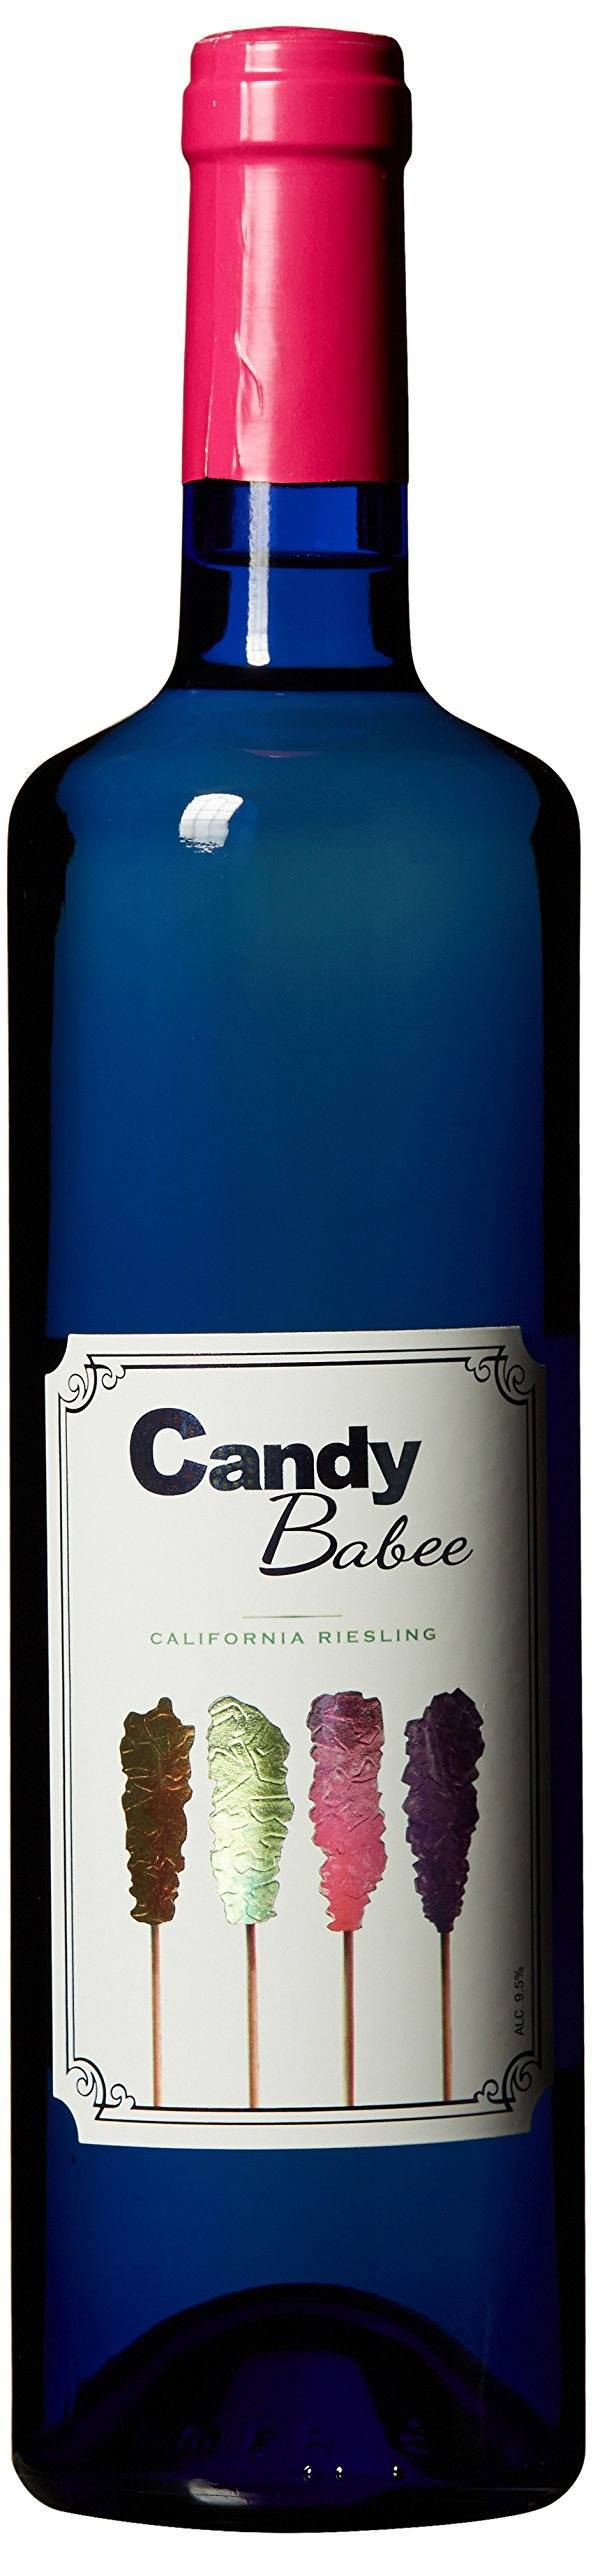 NV Candy Babee California Riesling Wine